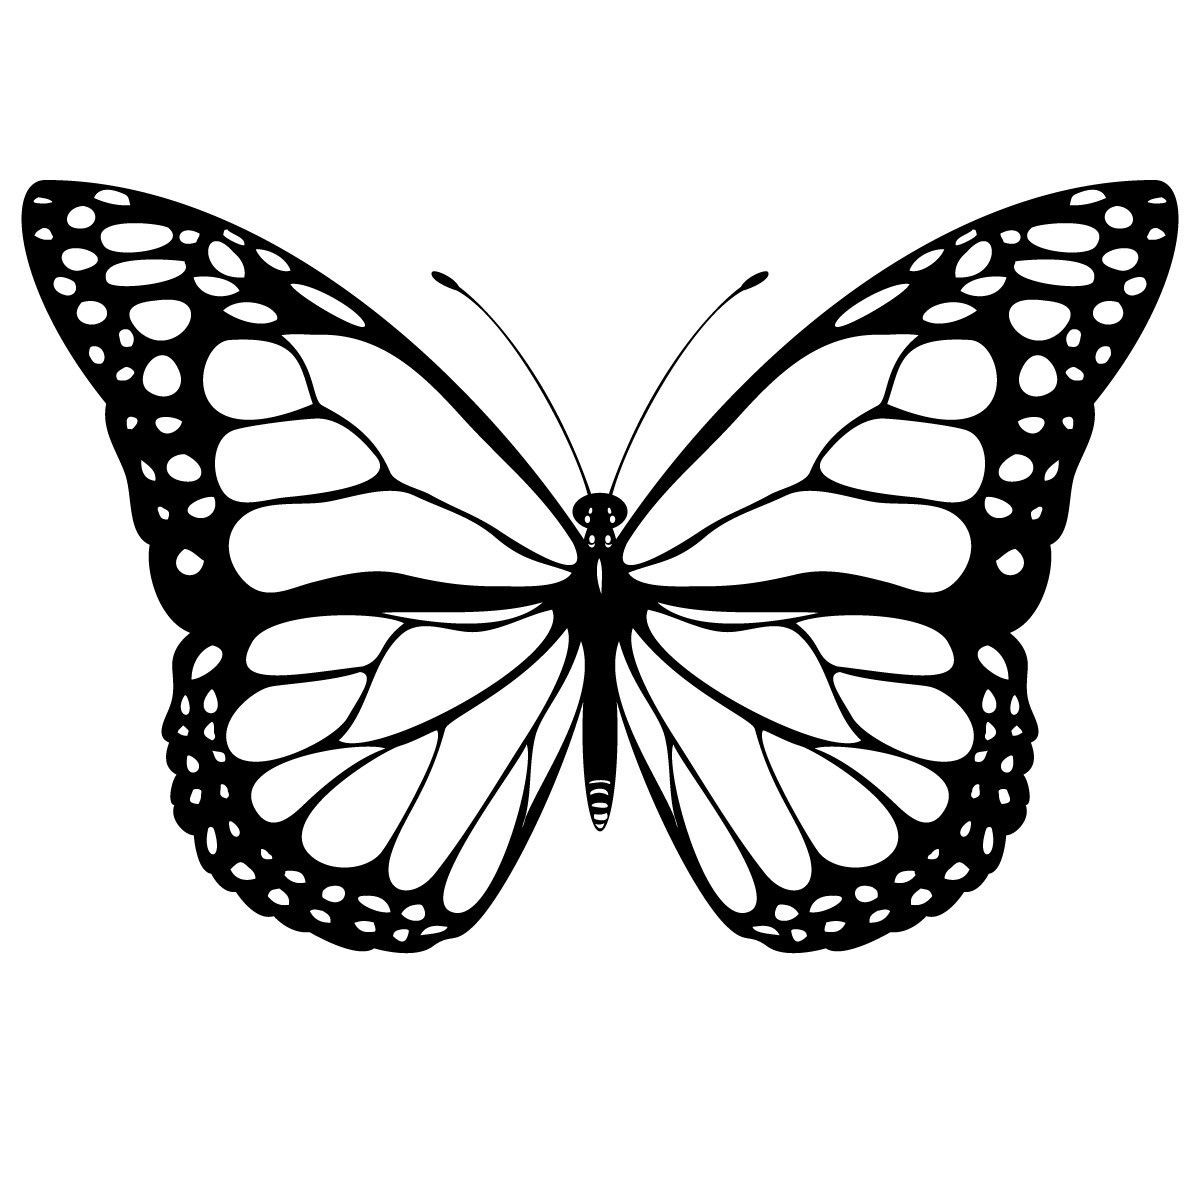 Free Printable Butterfly Coloring Pages For Kids | Printable with Monarch Butterfly Template 29350